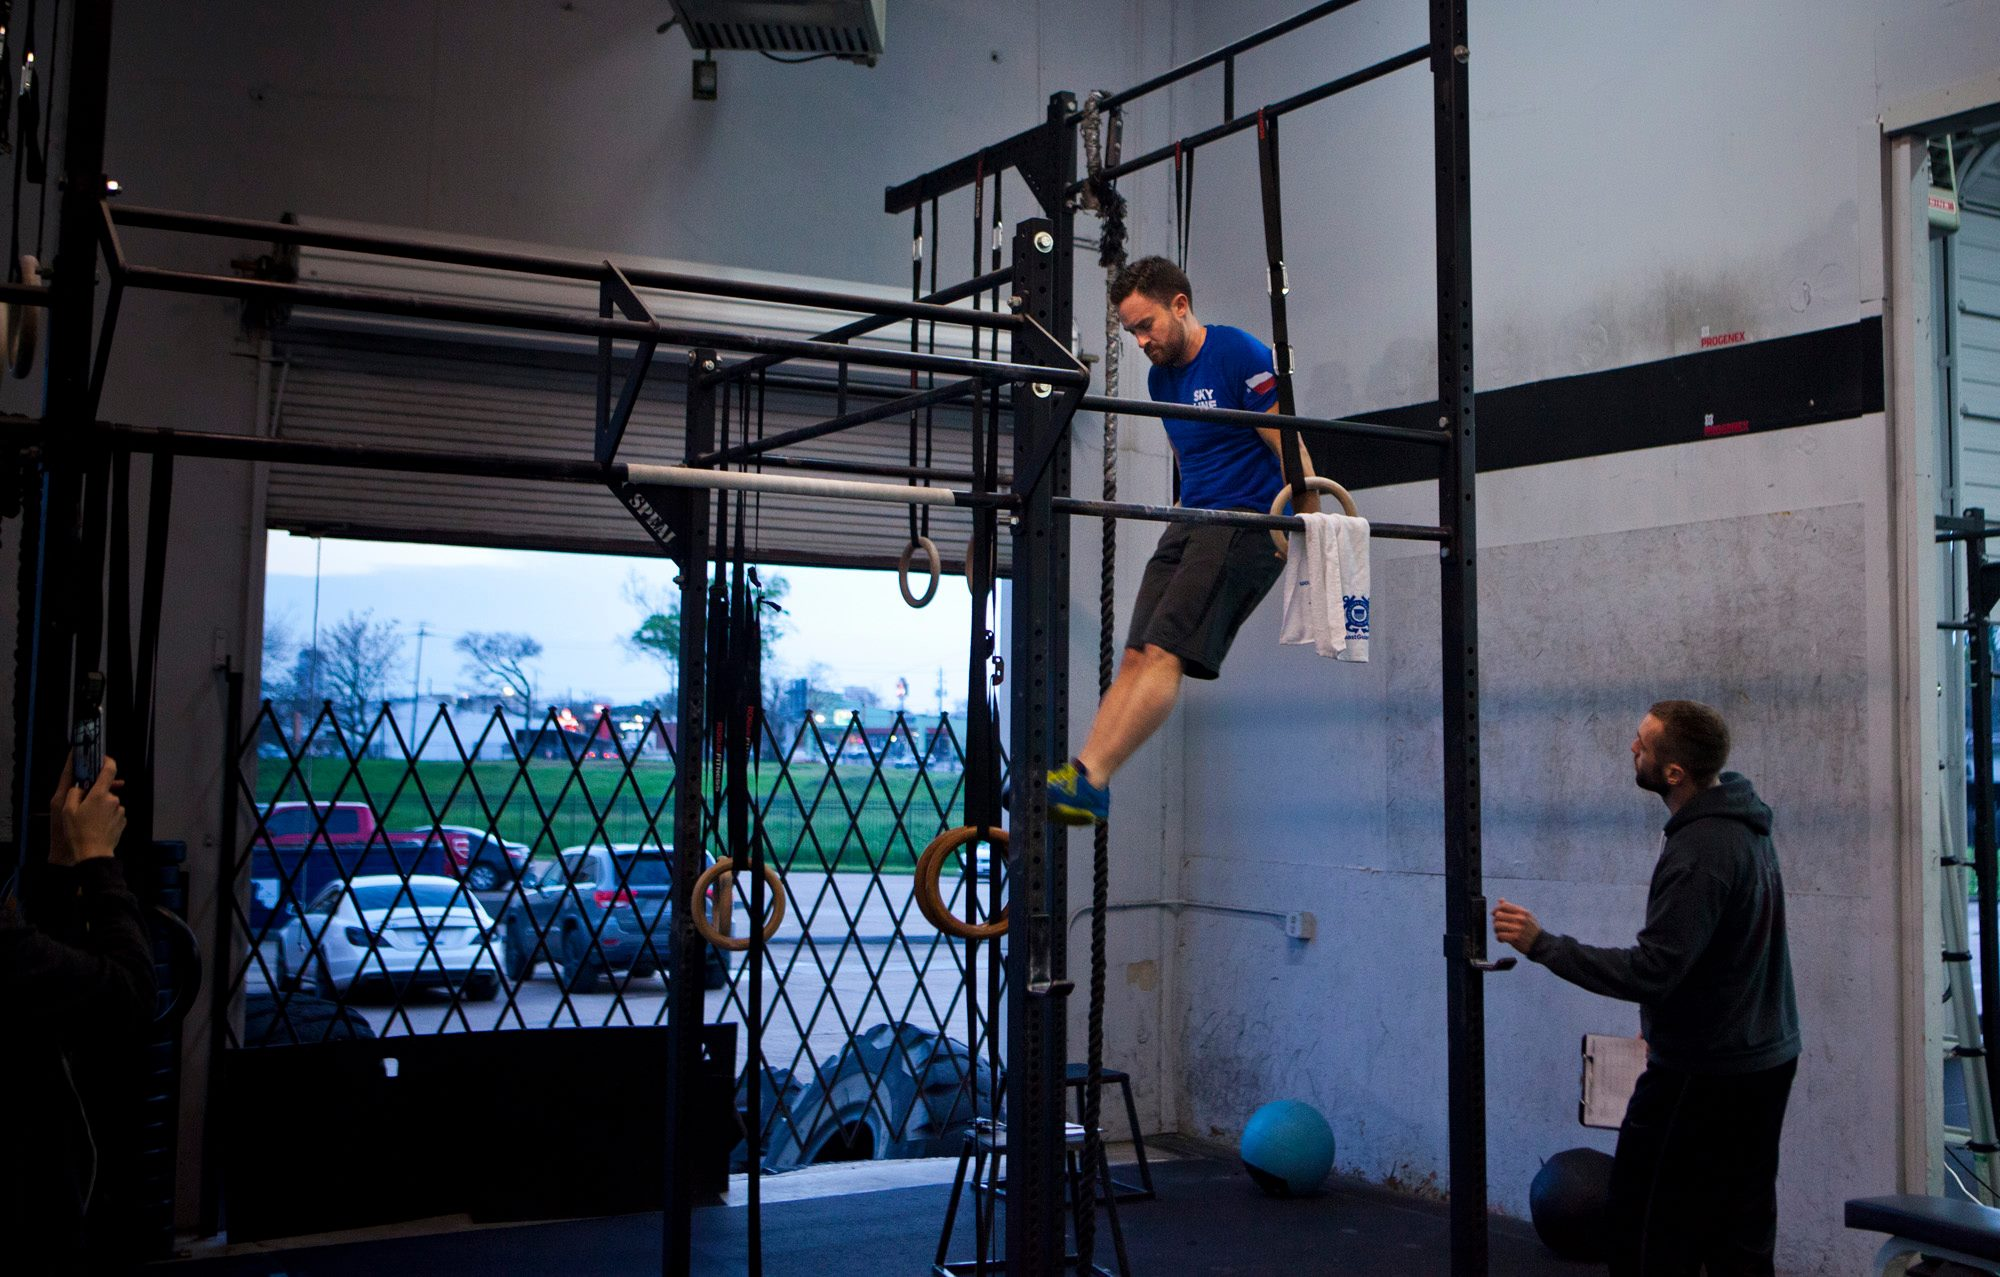 Point the toes! Jeff knocking out some Muscle Ups.